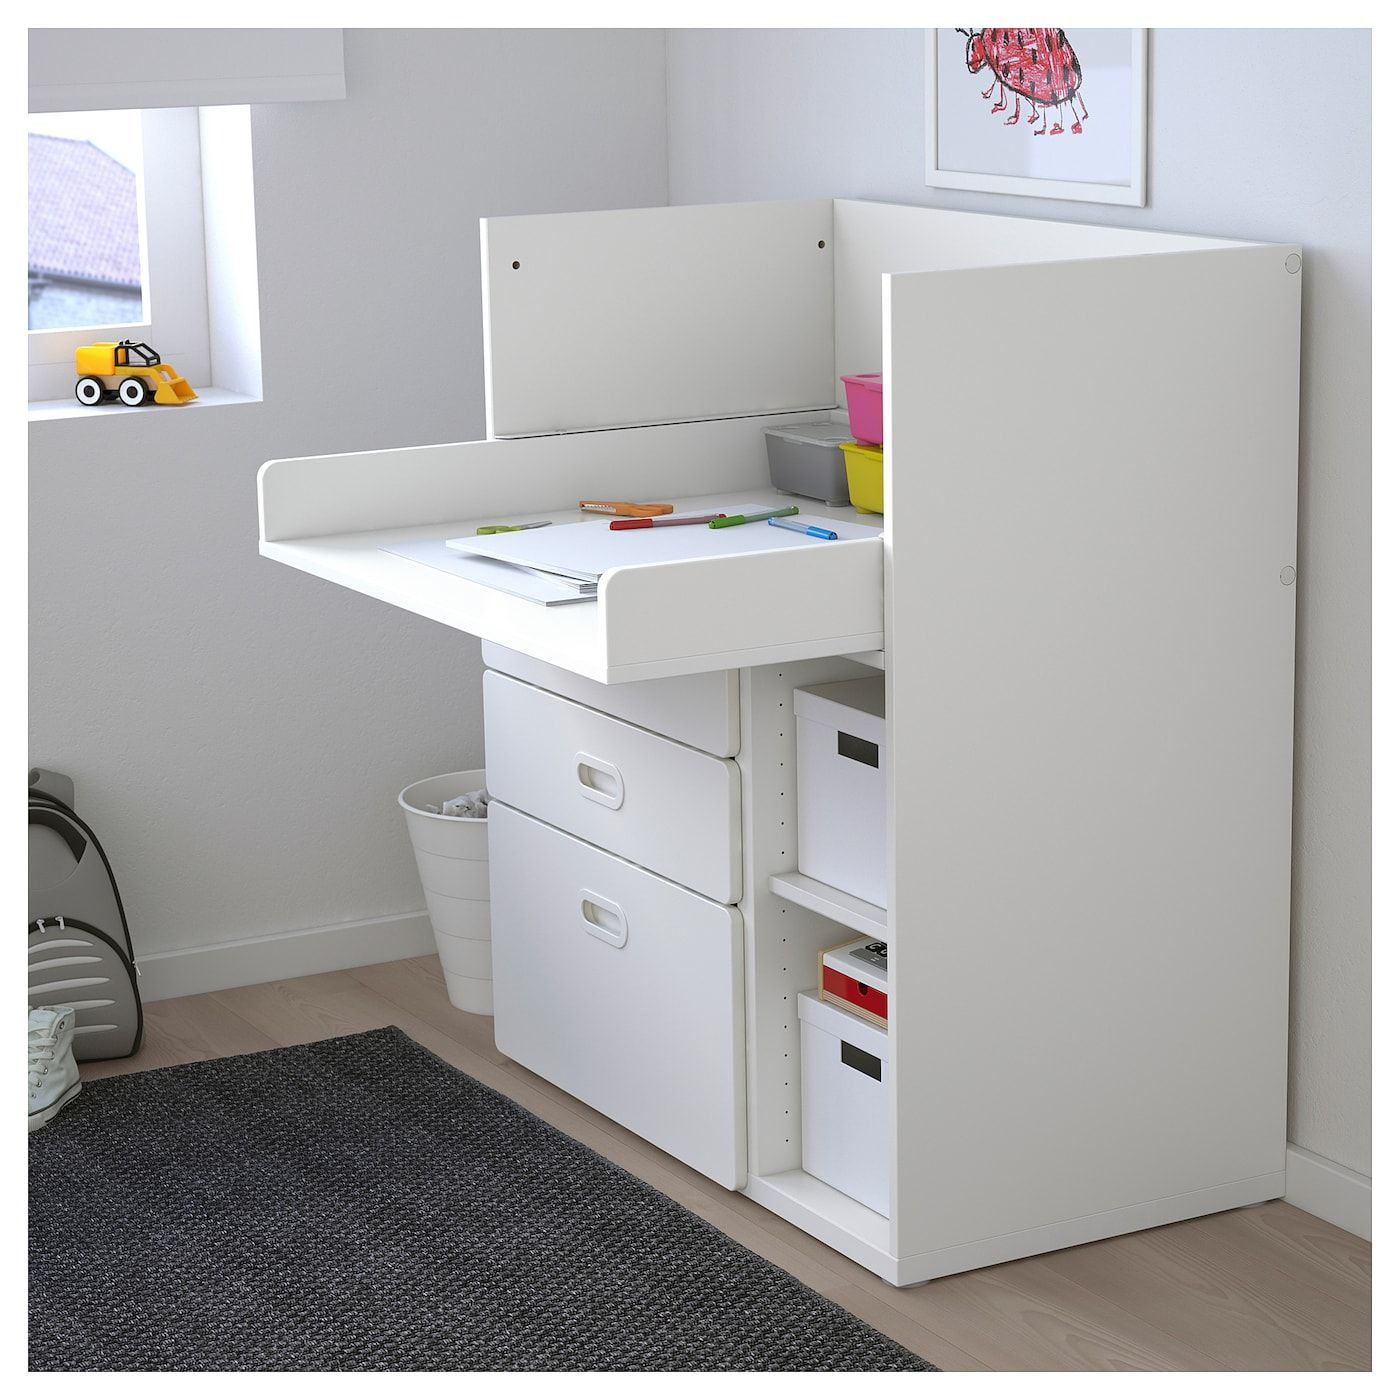 Table A Langer Escalier stuva / fritids changing table with drawers - white, white